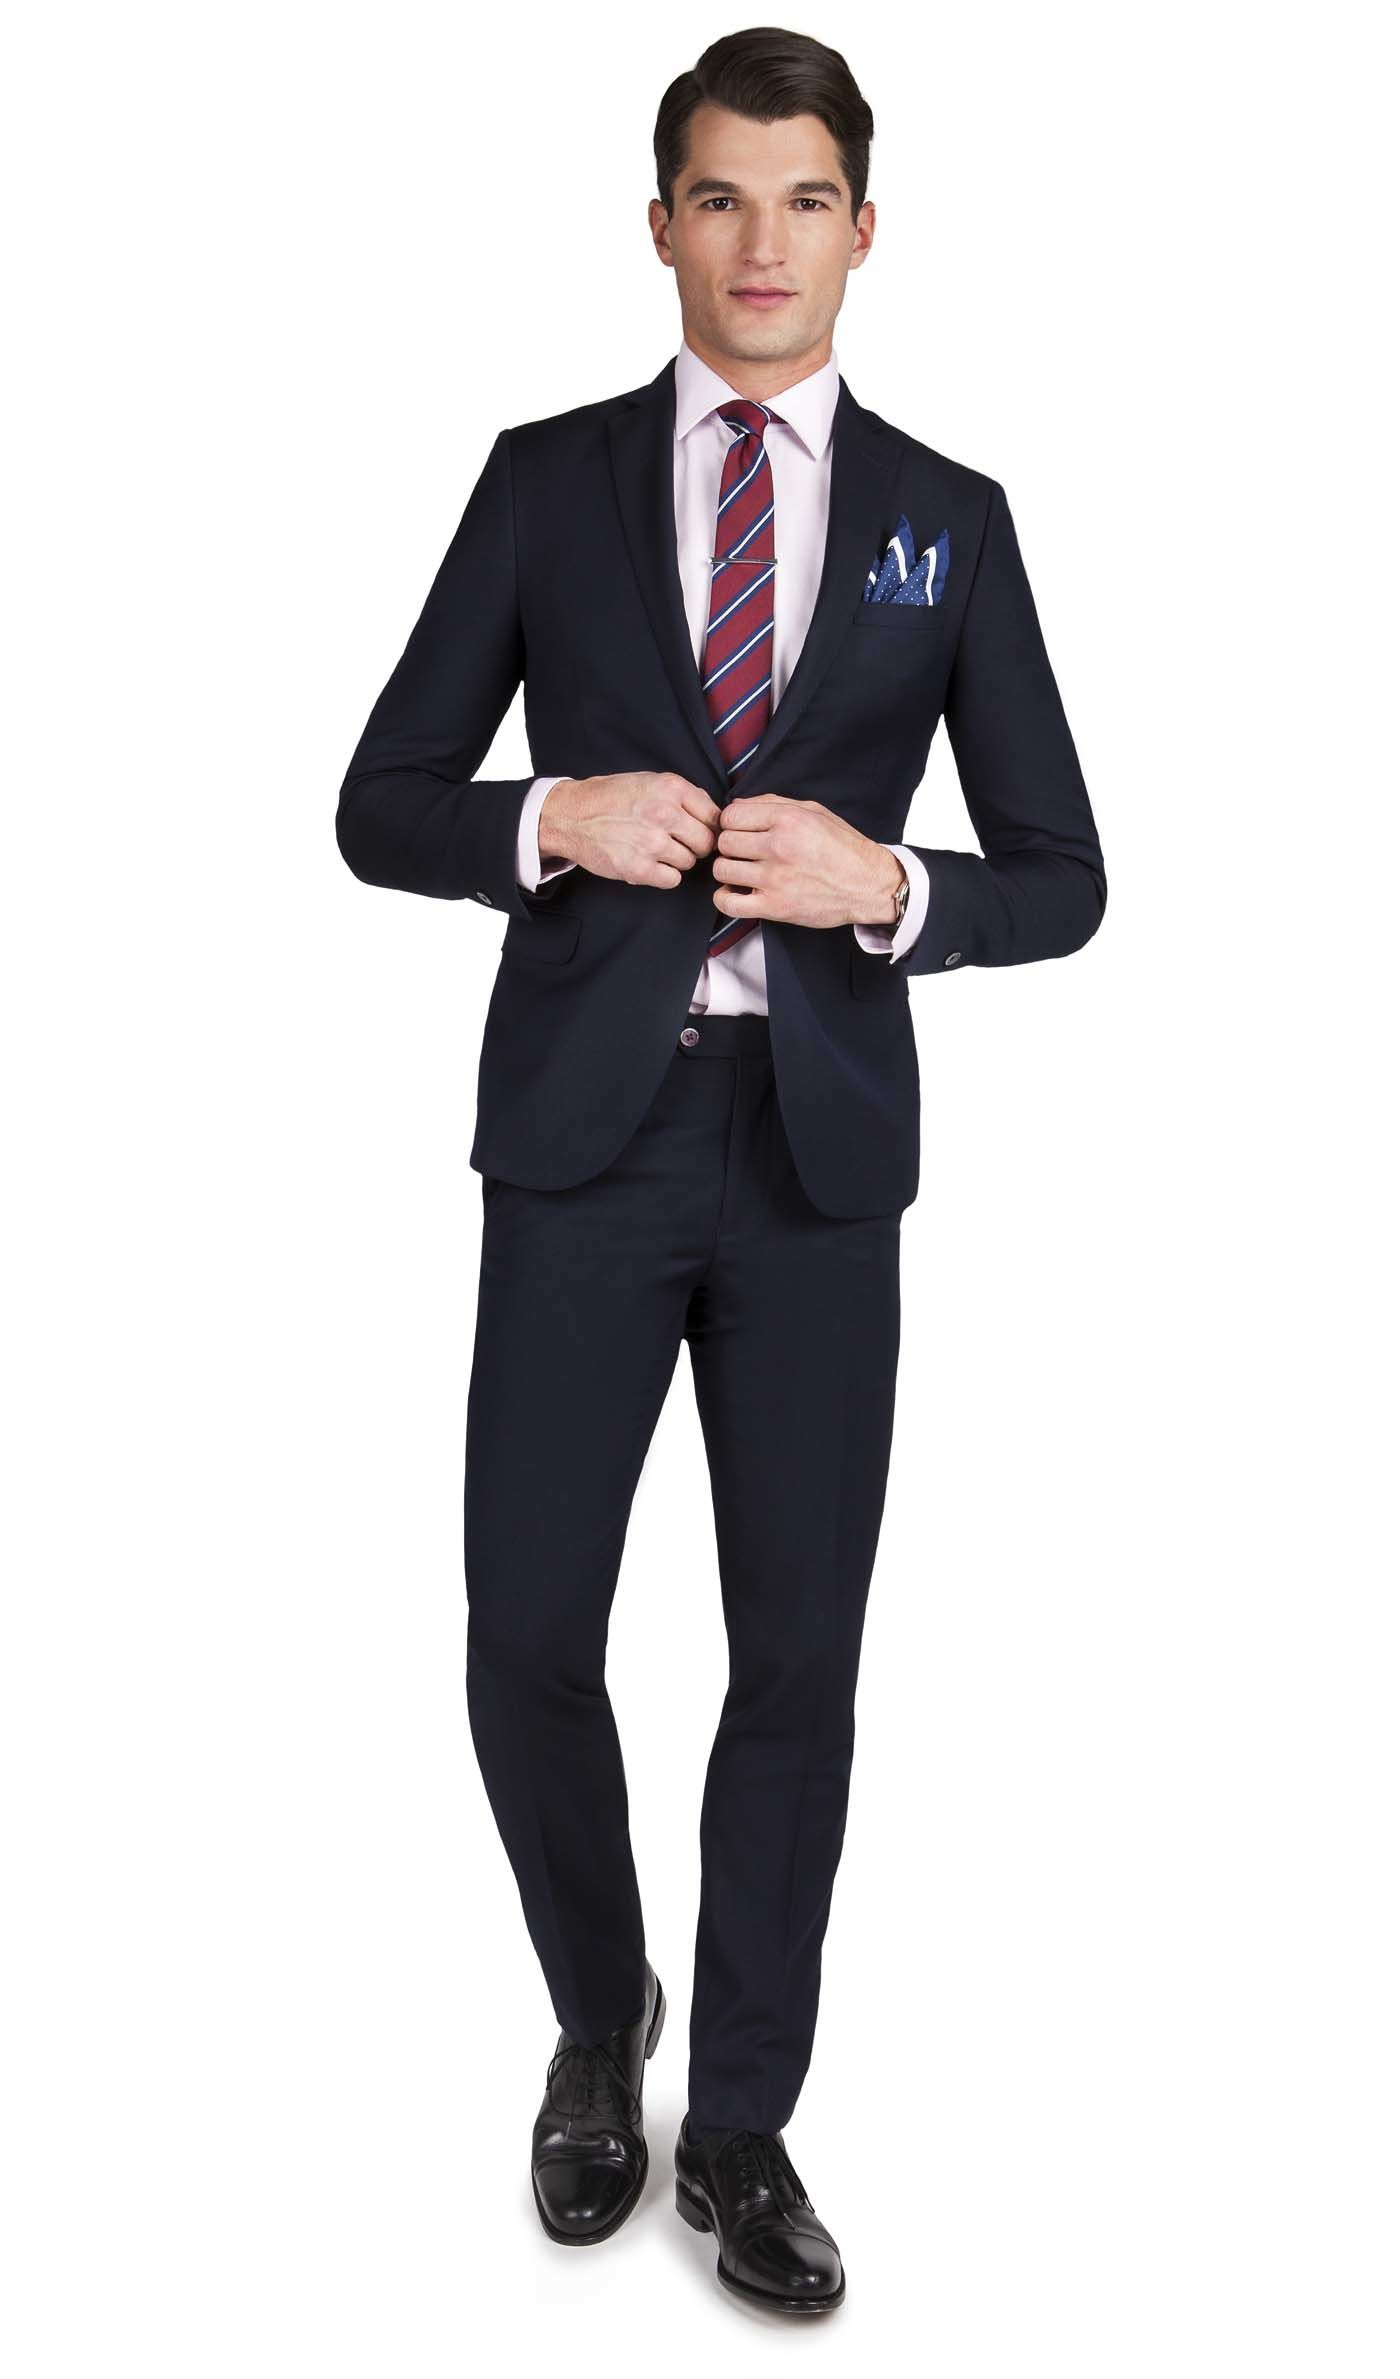 Fitted Suits pine navy textured weave 1-button skinny fit suit DHIWQBM